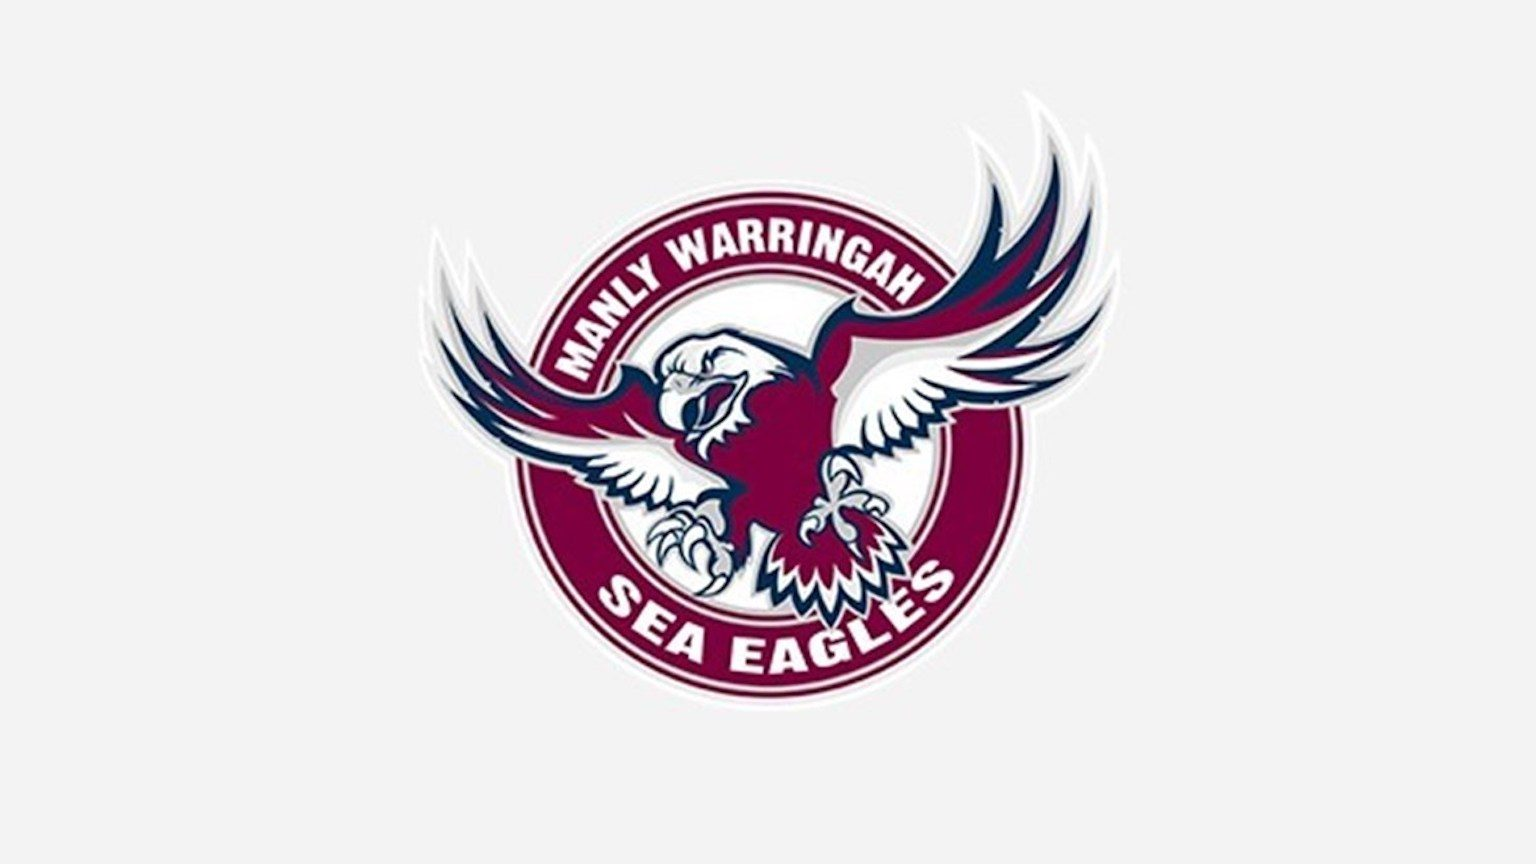 Manly Warringah Sea Eagles